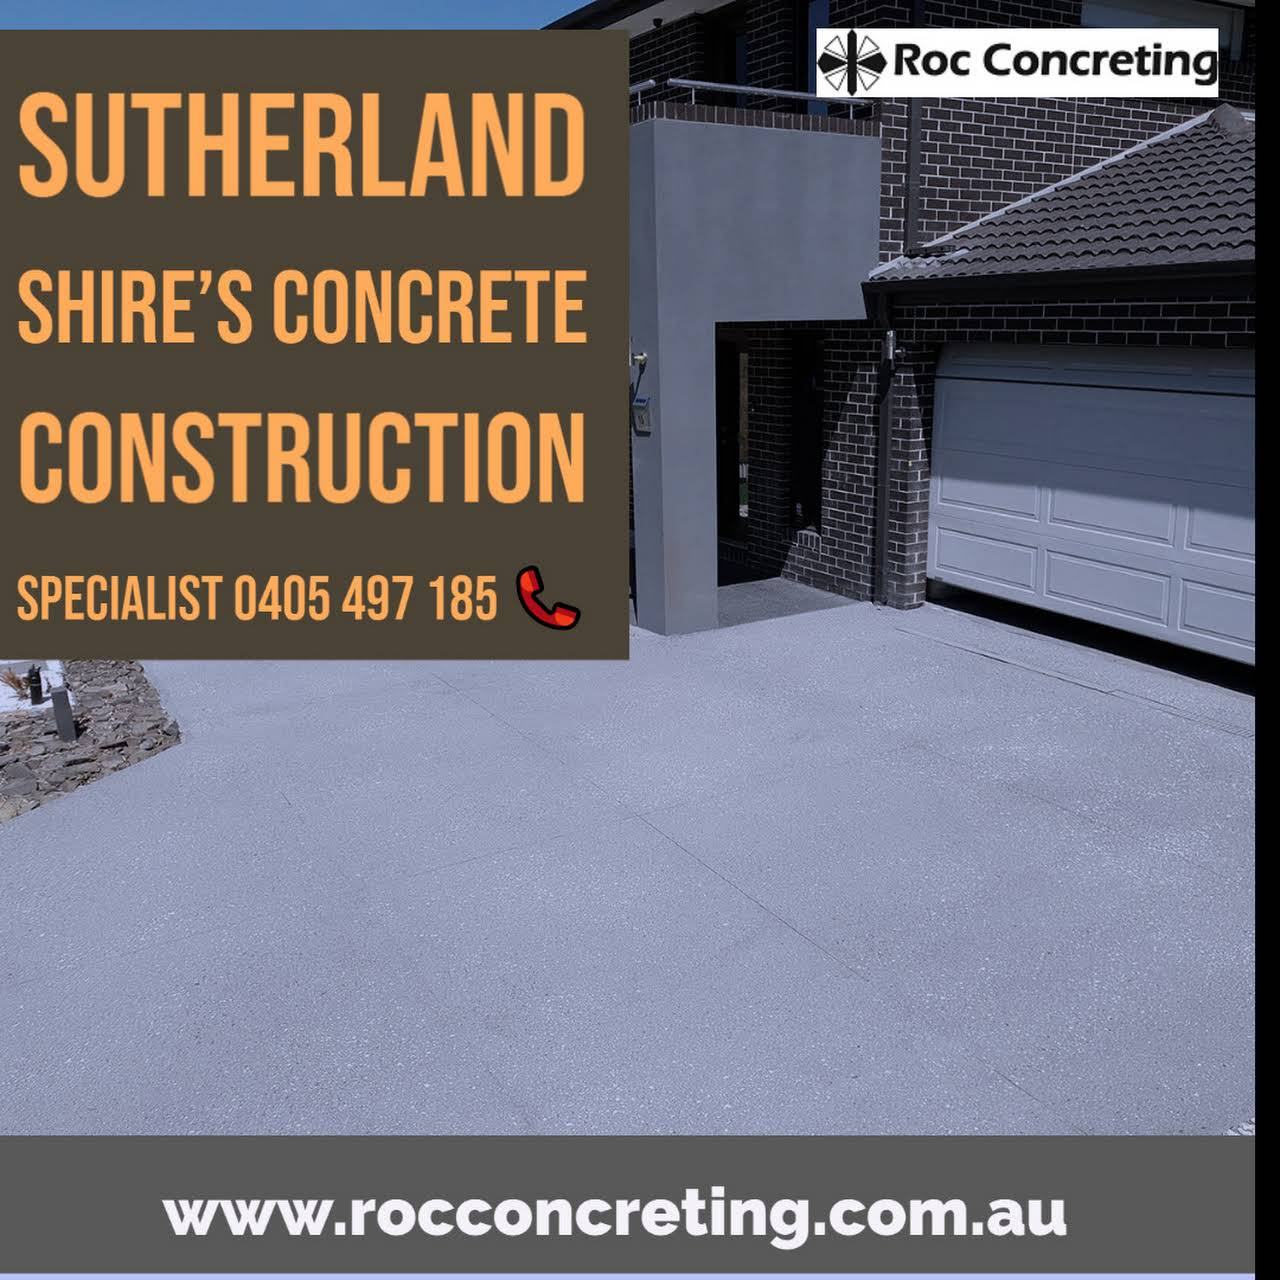 concreting in sutherland shirepicture concreters near me in sutherland shirepicture shire concrete servicesimage